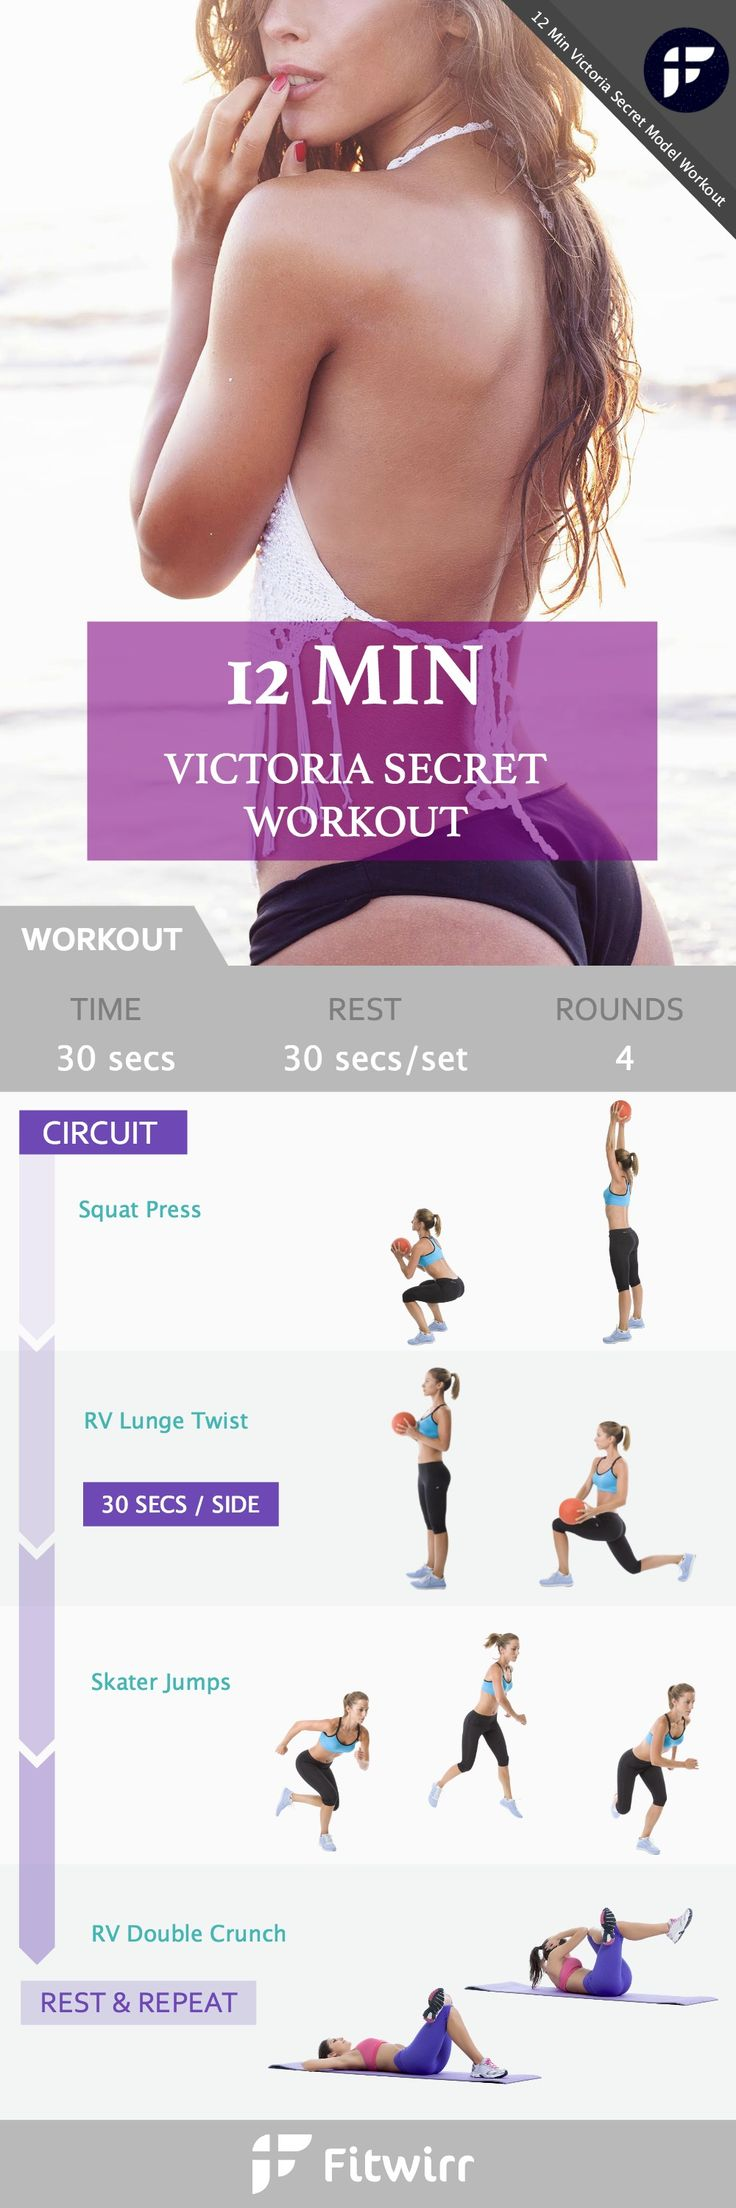 12-Minute Victoria's Secret inspired Workout - You may not be walking the runway like the Angels, but you can still benefit from this butt firming, leg toning, and ab flattening workout that whips your body into shape.